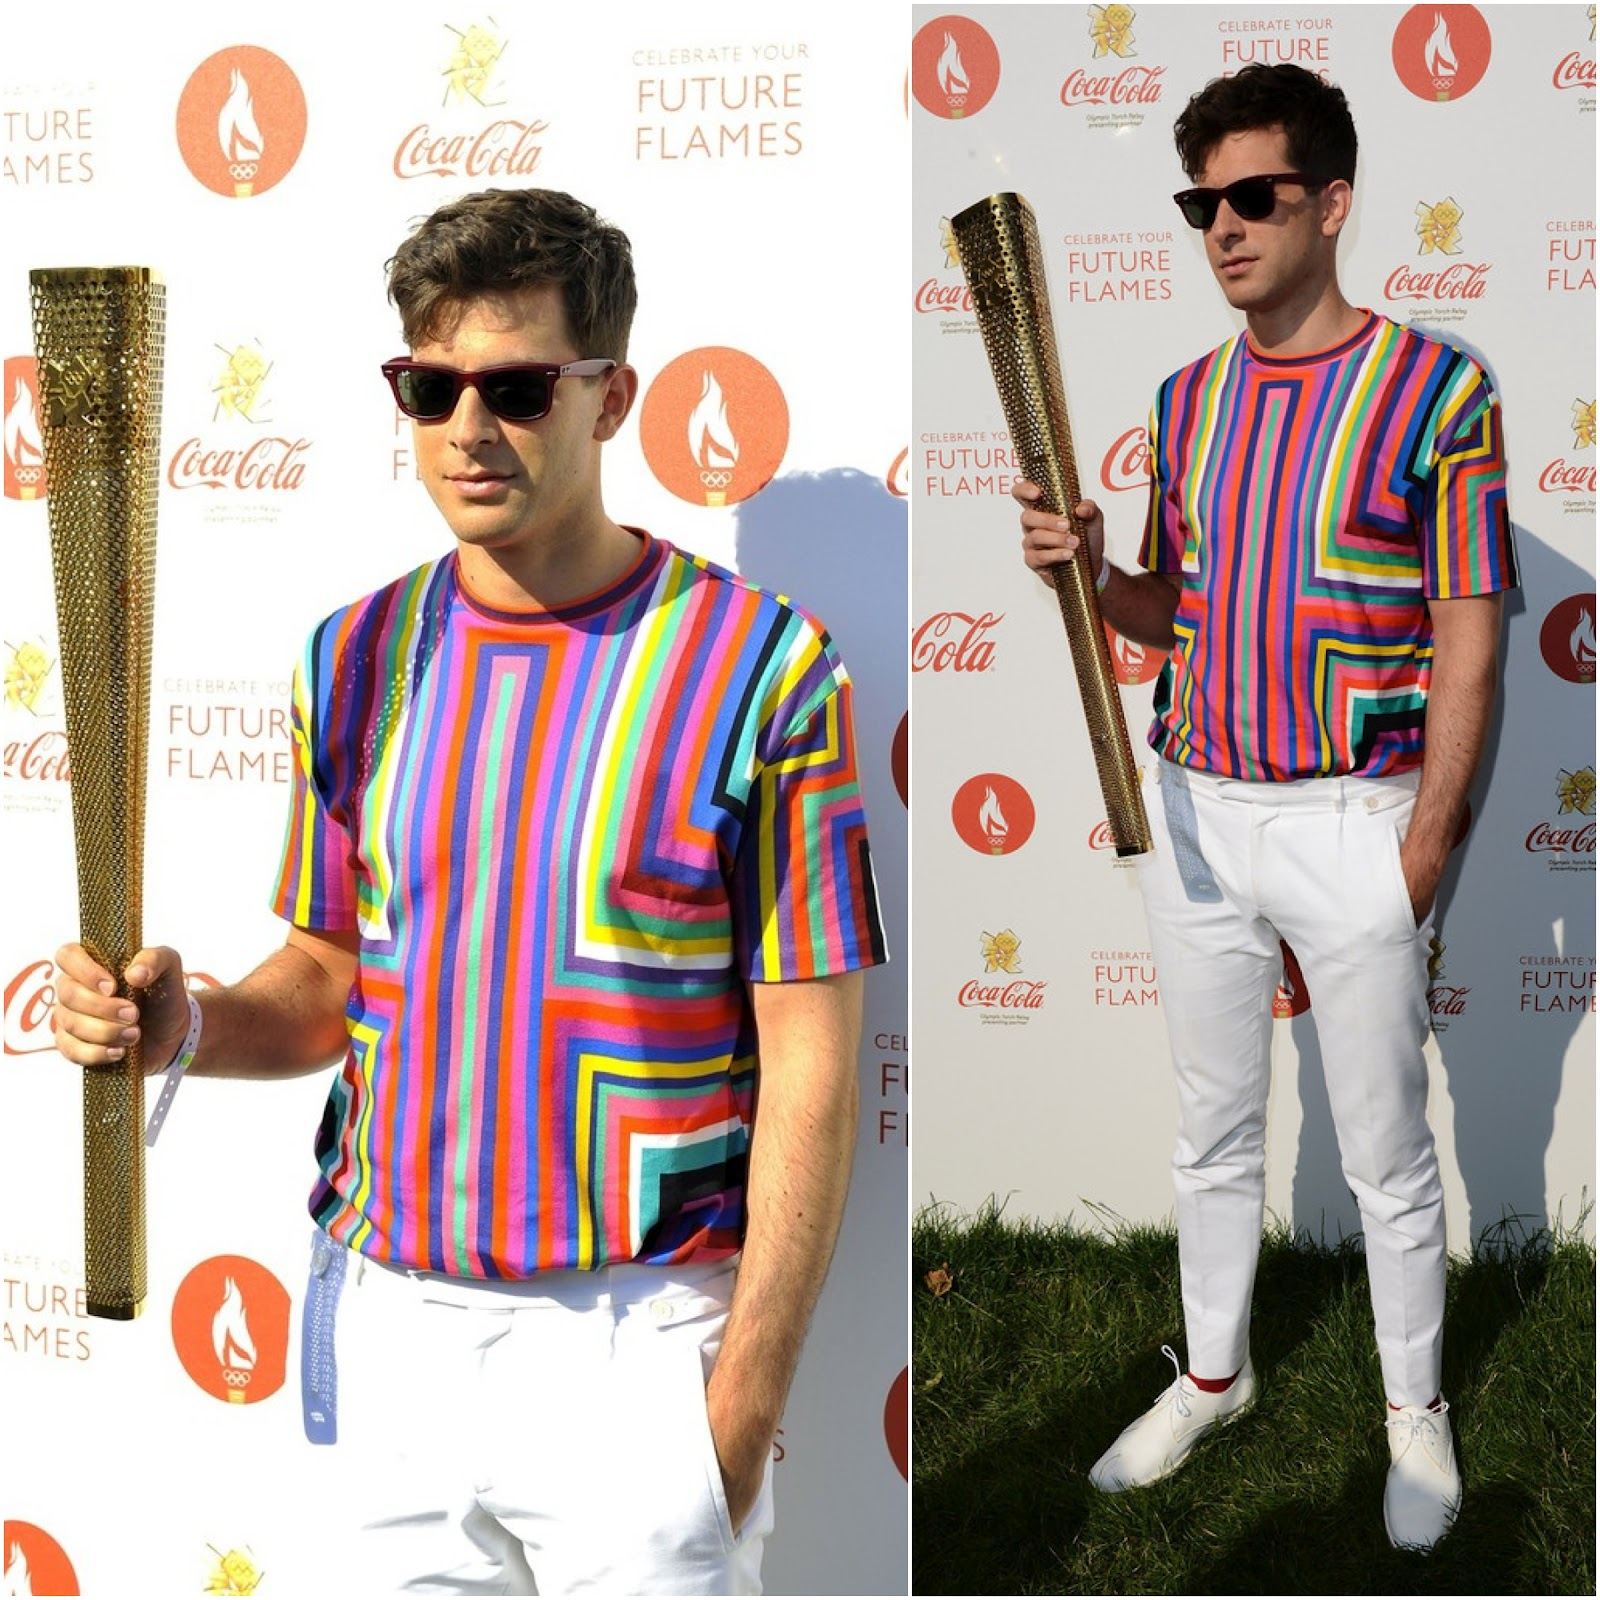 00O00 London Menswear Blog celebrity style Music producer Mark Ronson attends the Olympic Torch Relay Coca Cola Concert at Hyde Park in London in Raf Simons for Jil Sander Spring Summer 2011